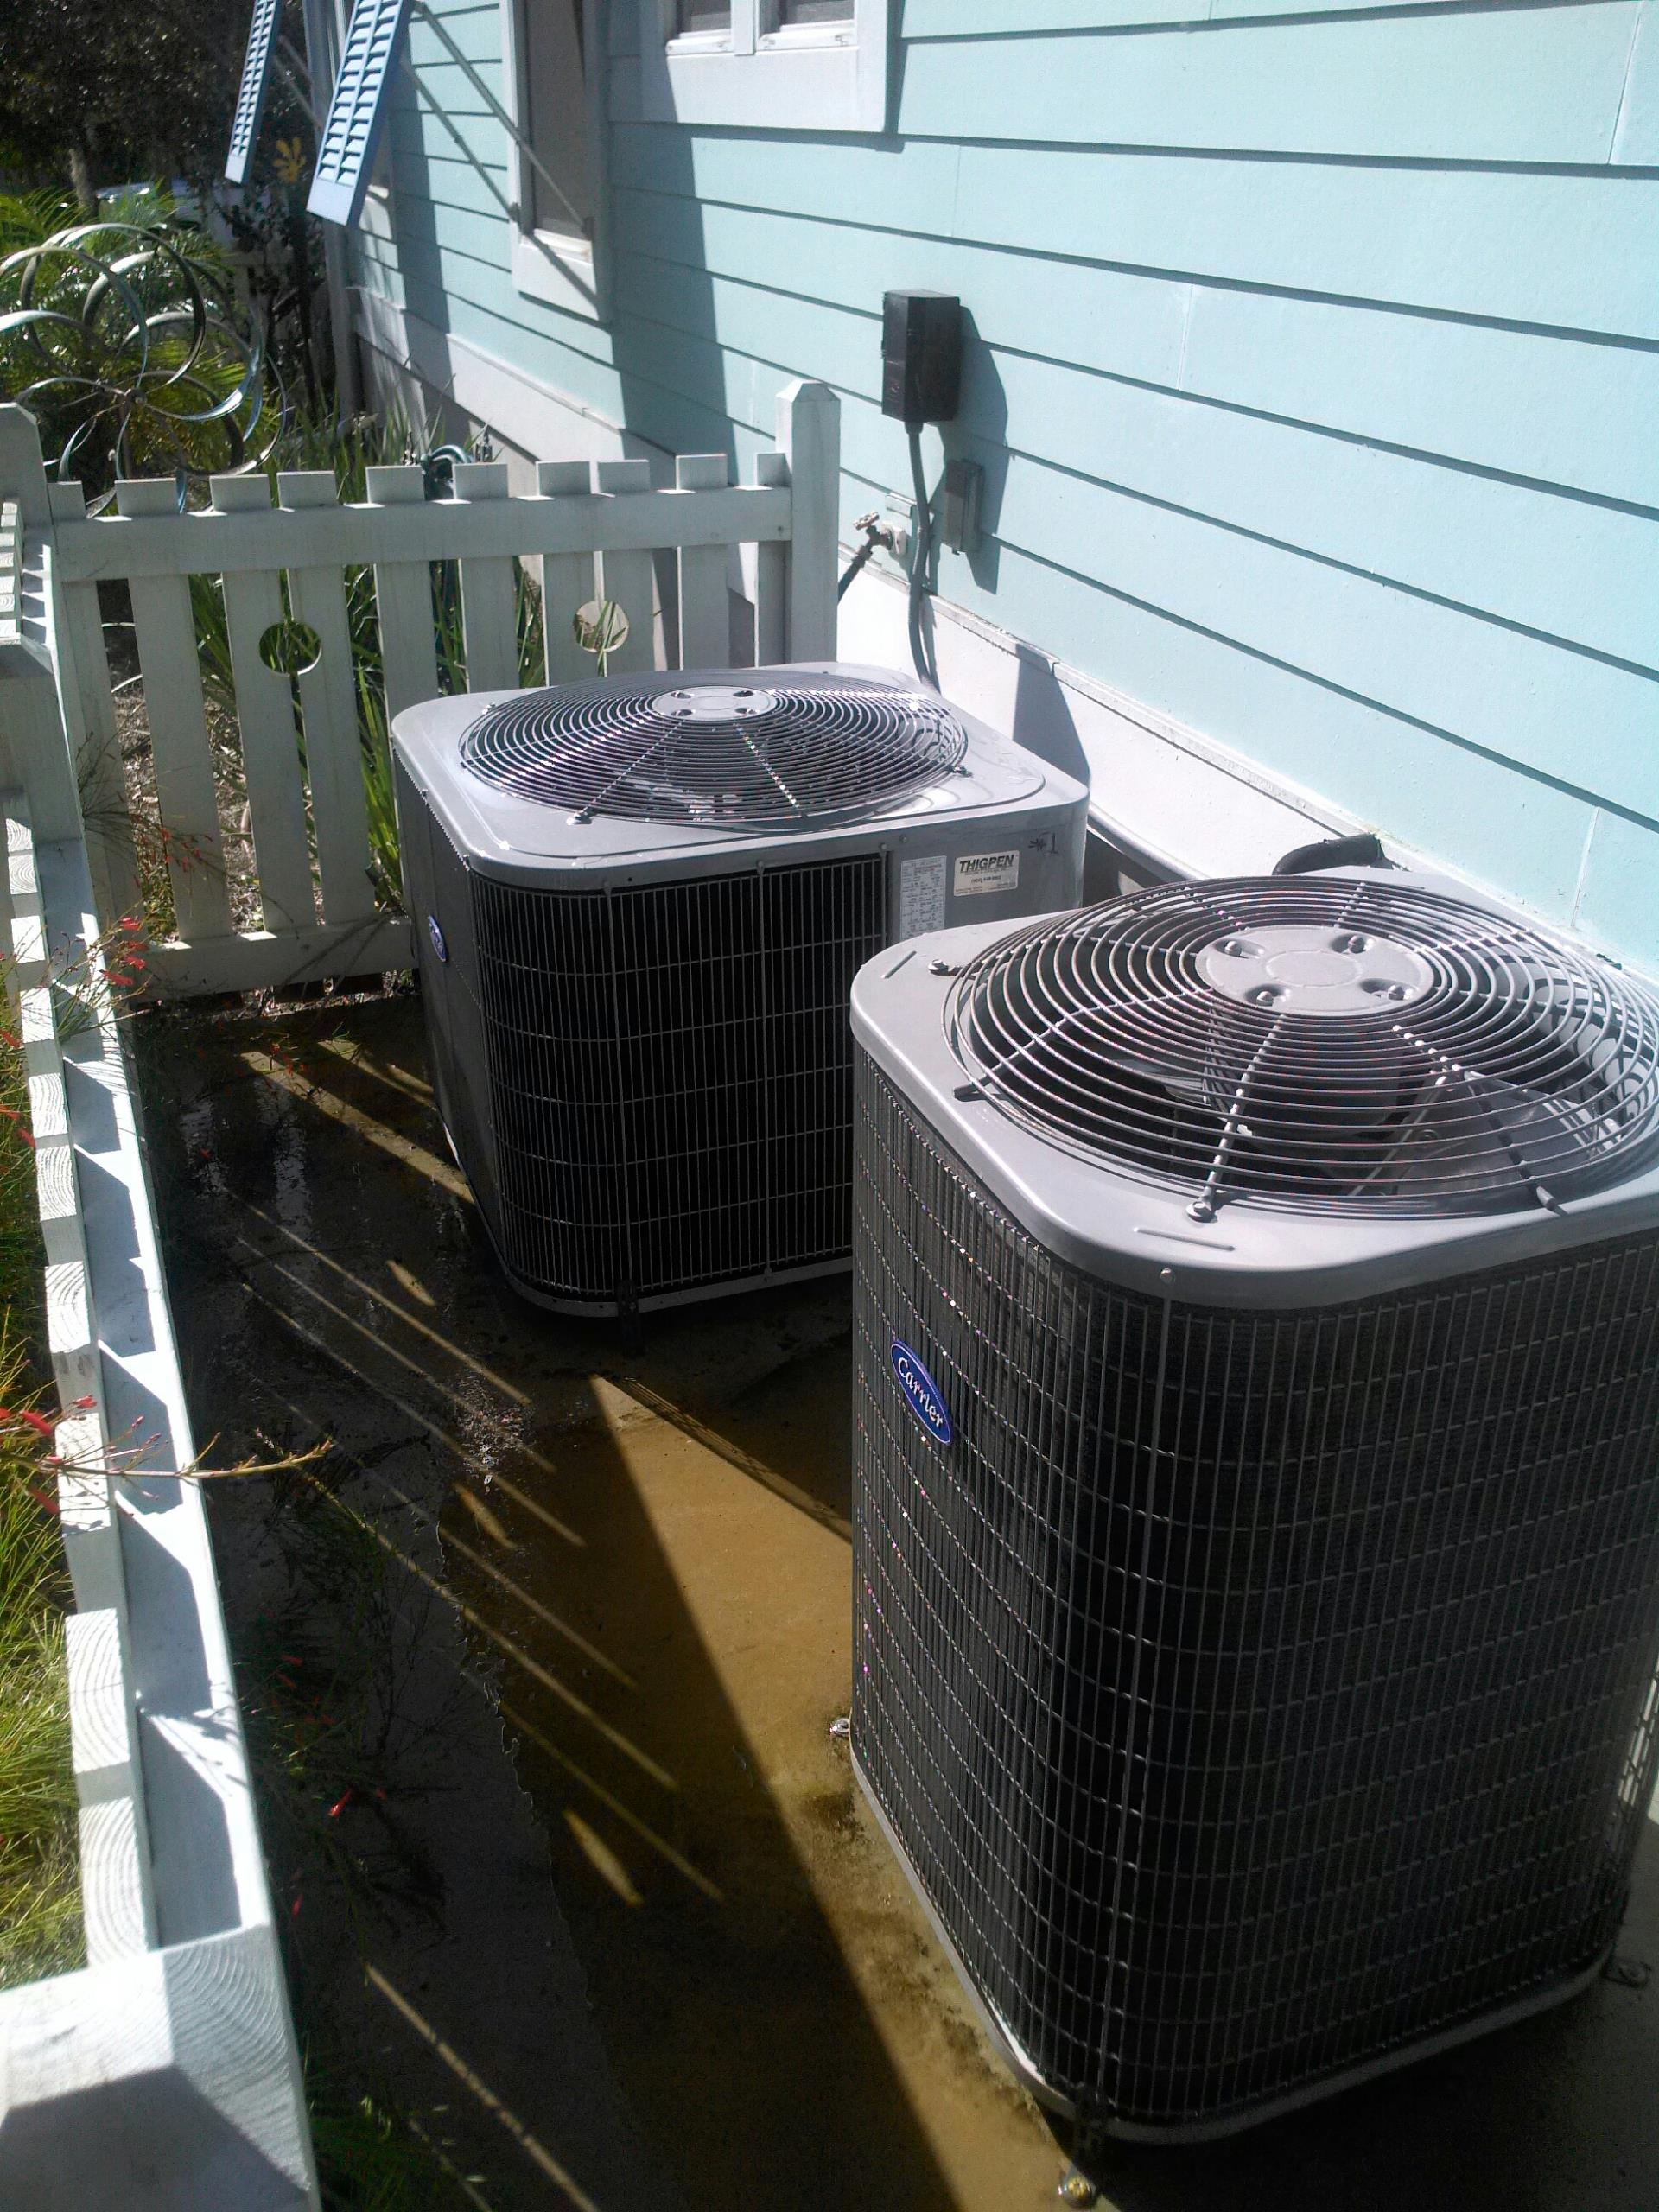 Jacksonville Beach, FL - Performed maintenance on two Carrier heat pump systems